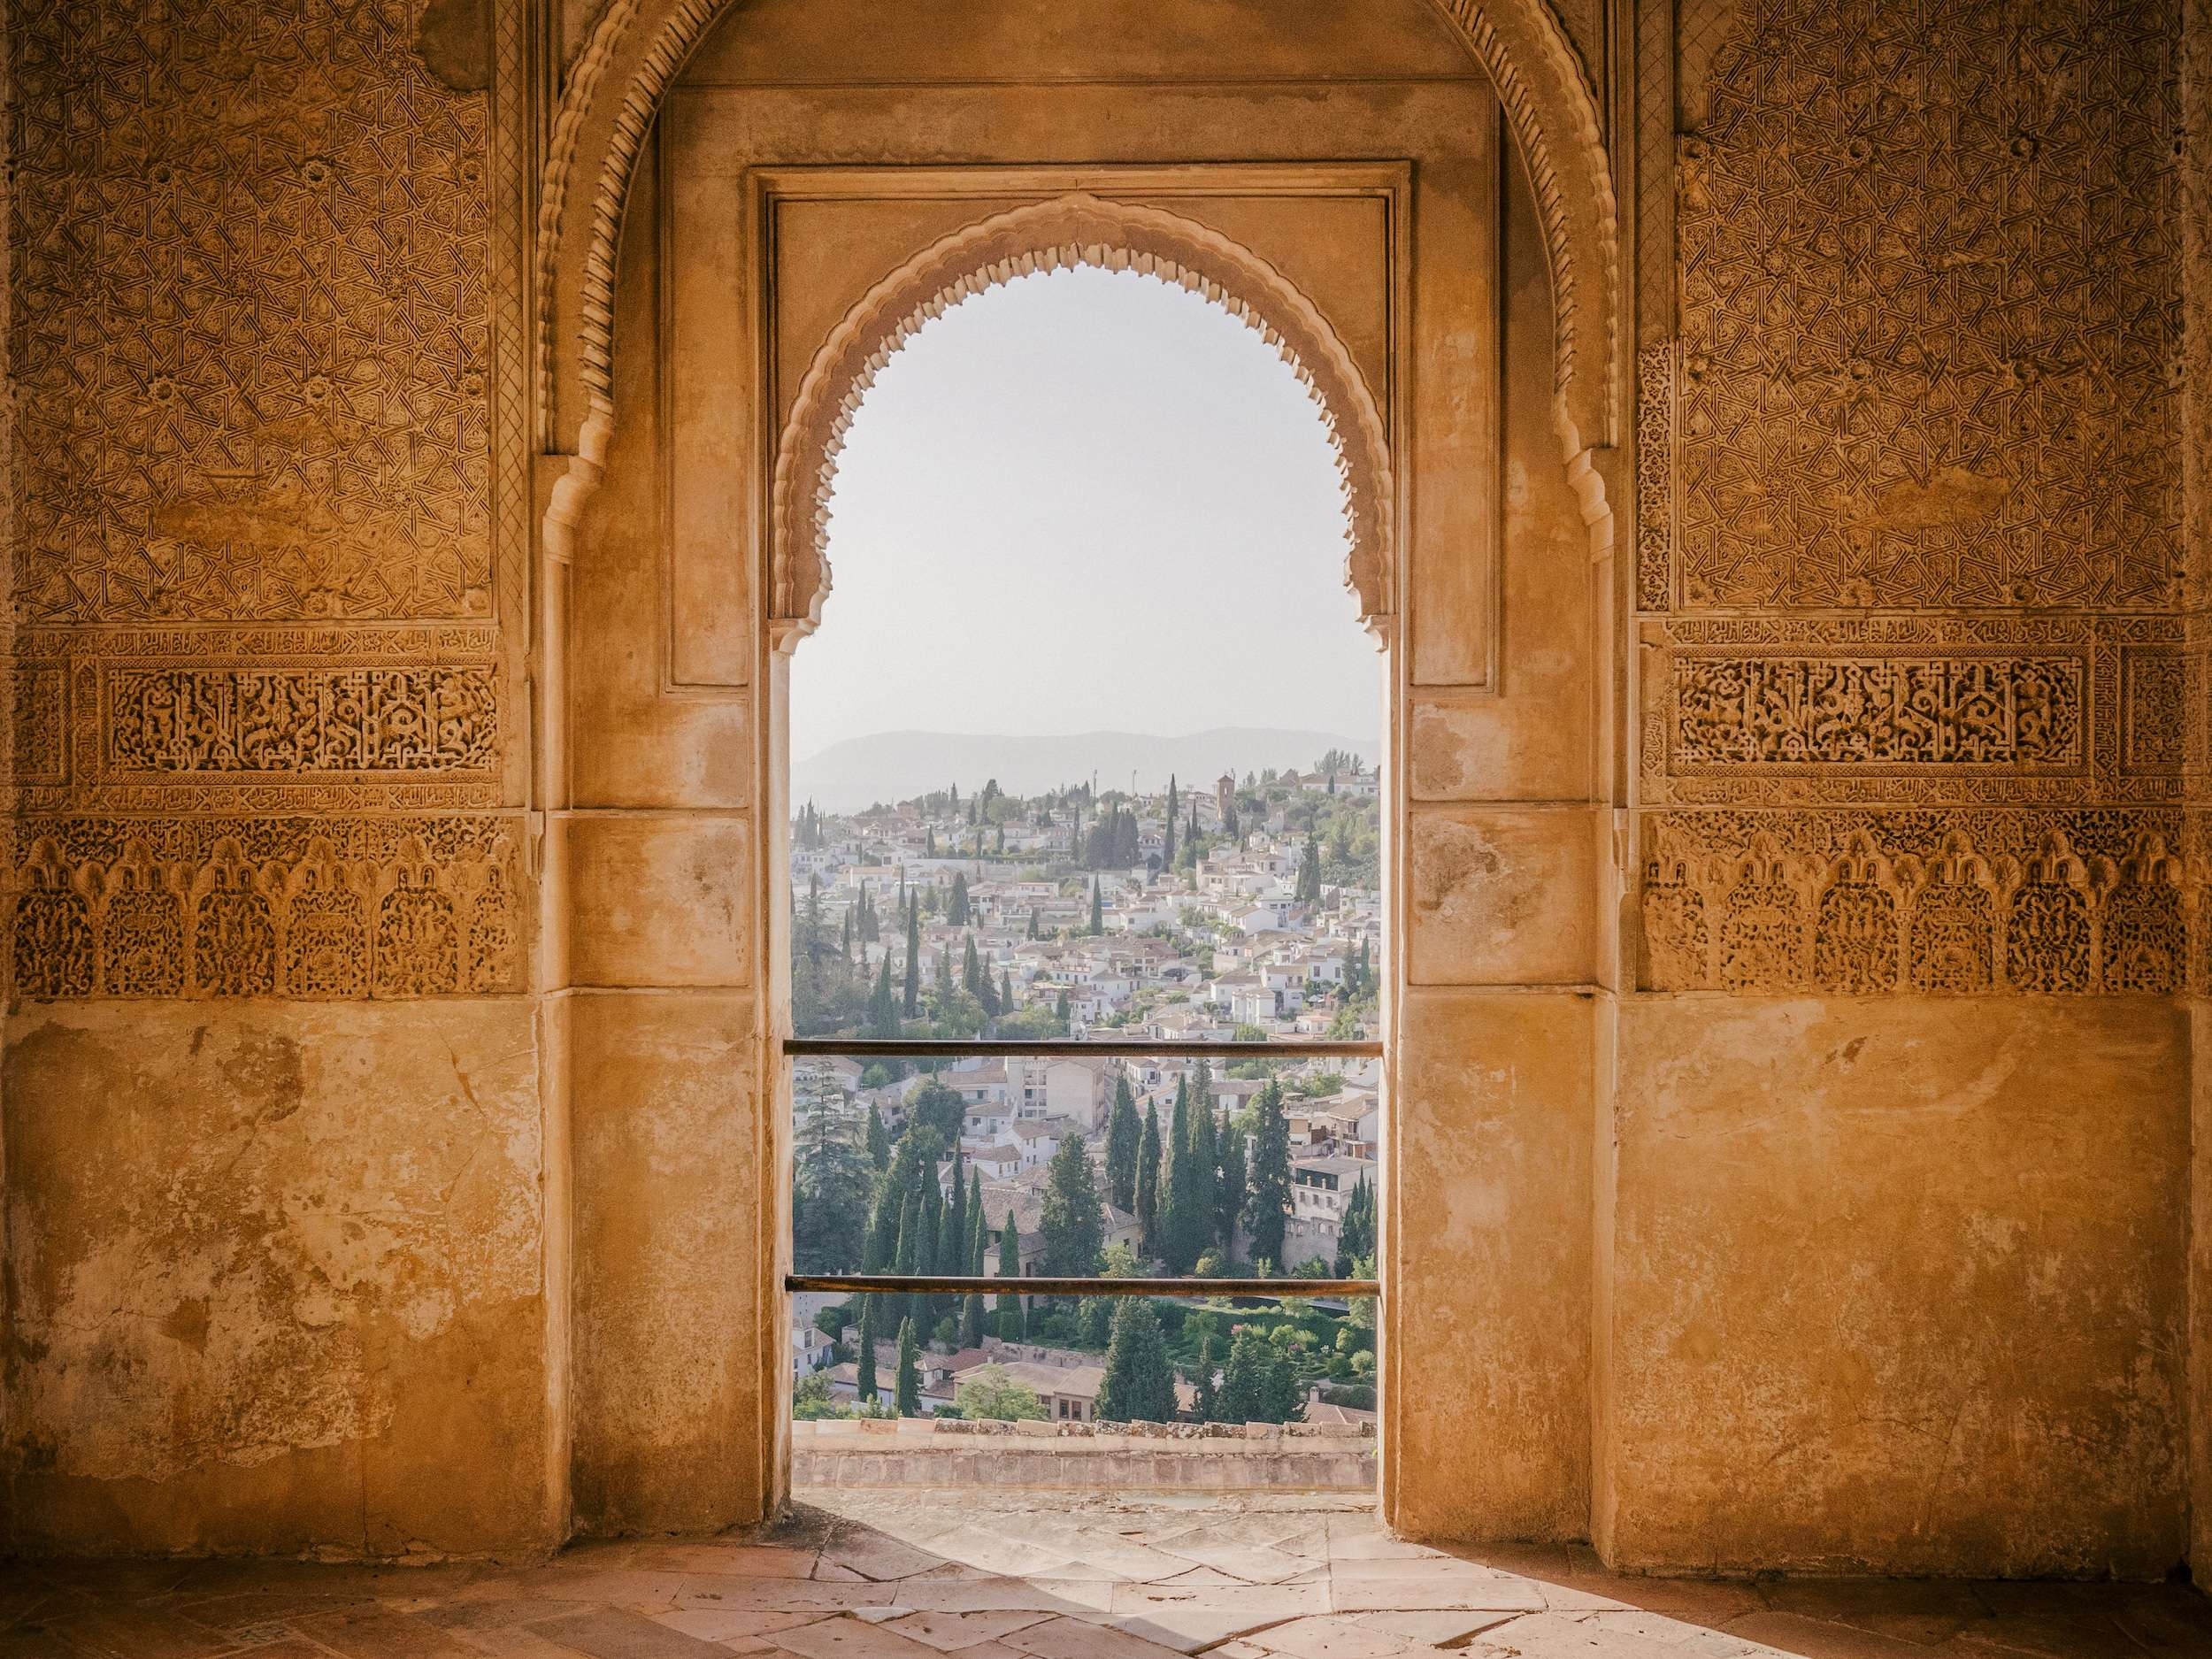 The Alhambra a holiday destination in Granada, Spain